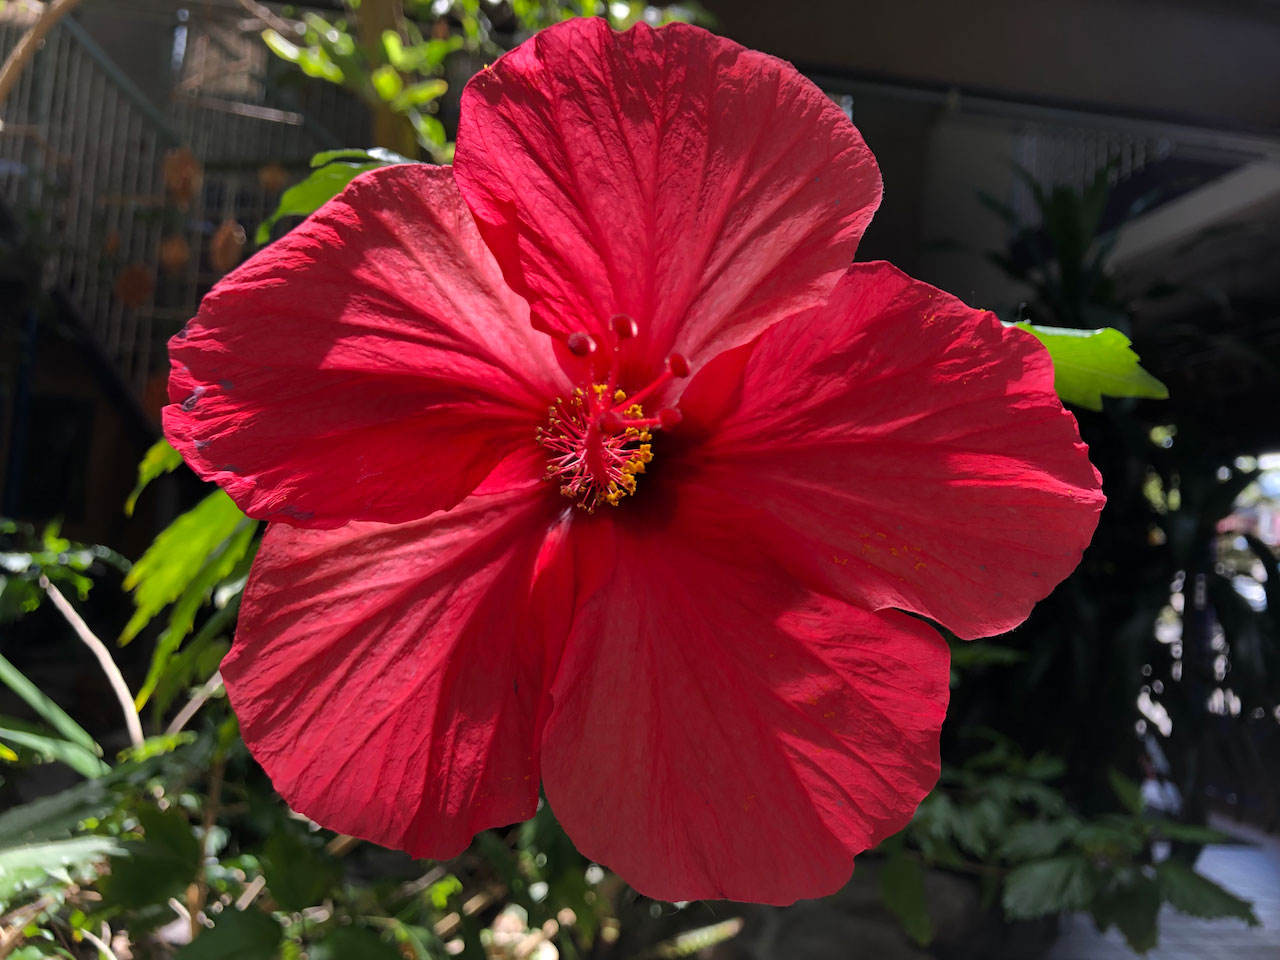 Flower in the atrium at 720 Tahoe Street where my company, PACE, is located and where I'm working to create a community space and art gallery for and with other creatives in the Reno area